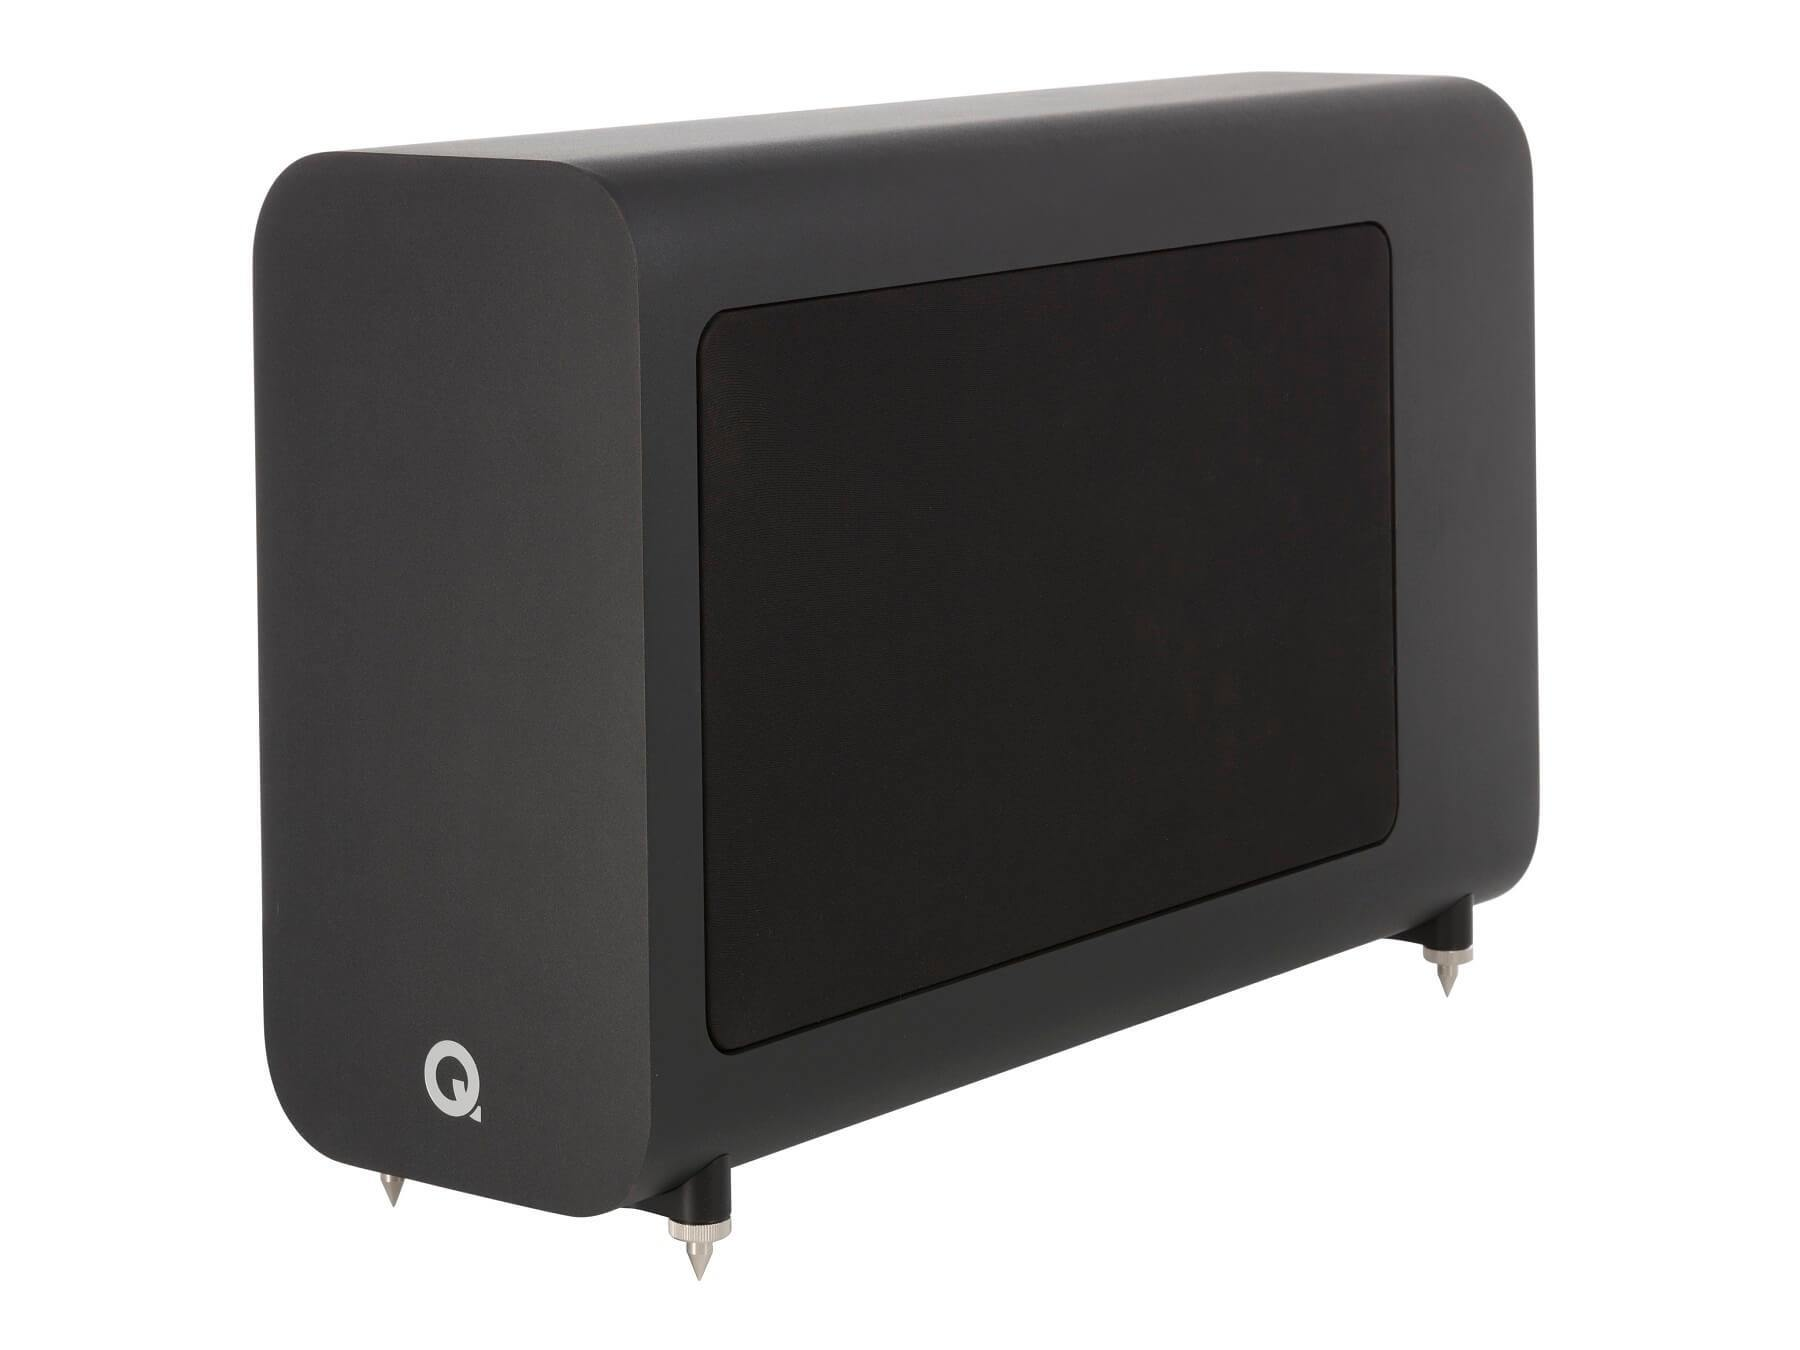 Q Acoustics 3060s - Subwoofer - Black